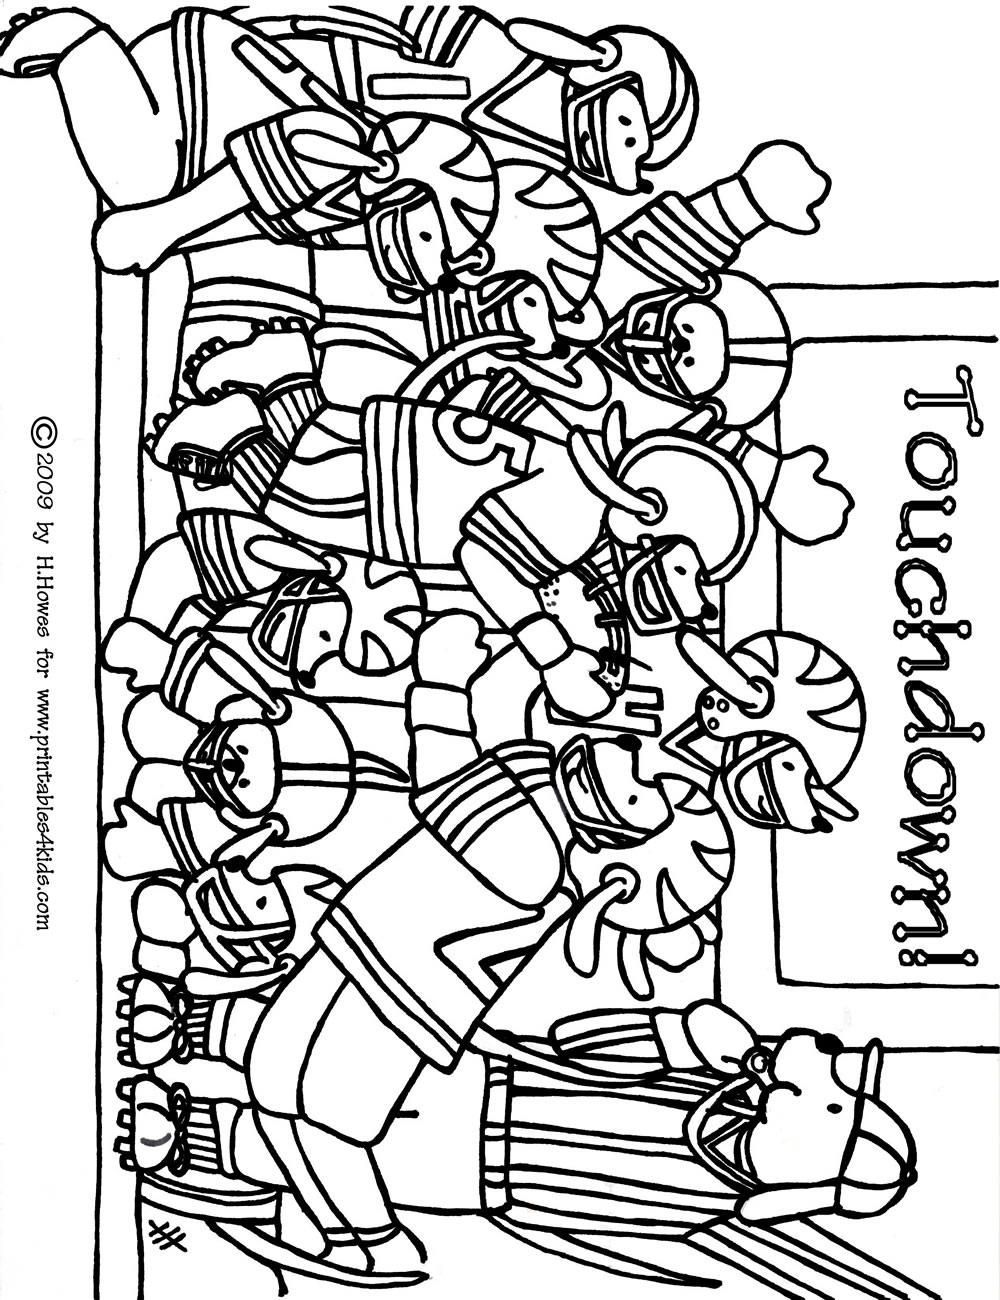 Football coloring pages printable coloring home for Coloring pages of football